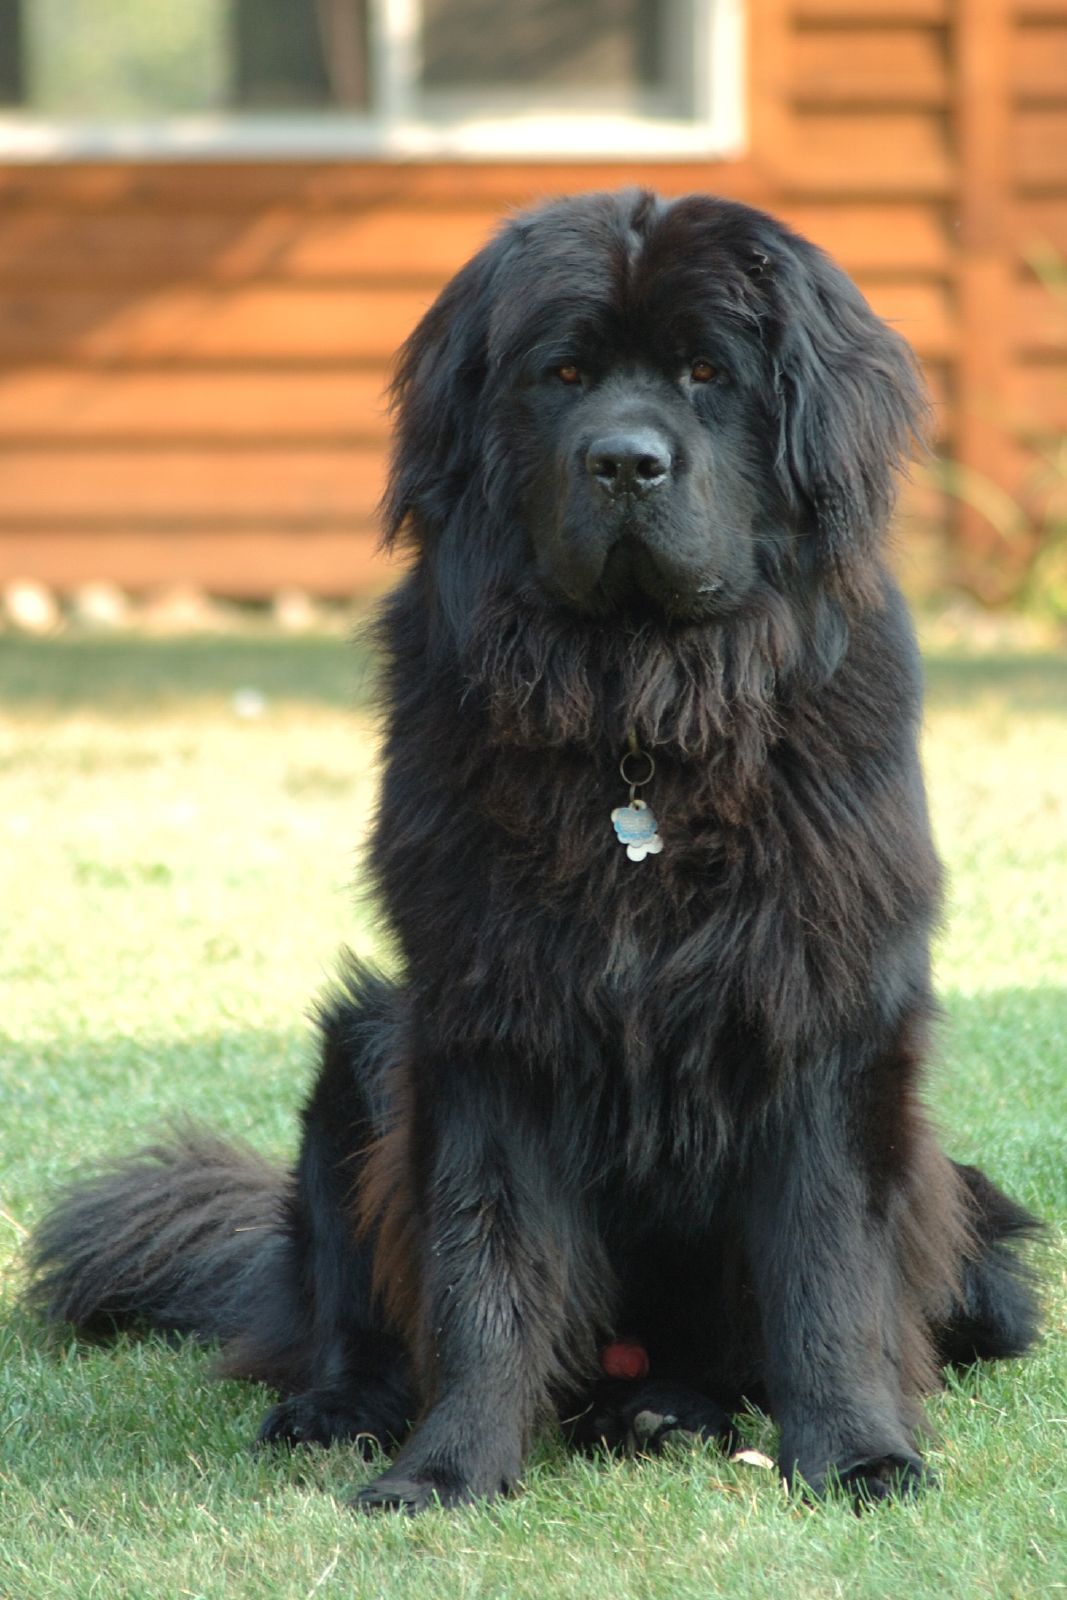 Best dog for kids - Newfoundland